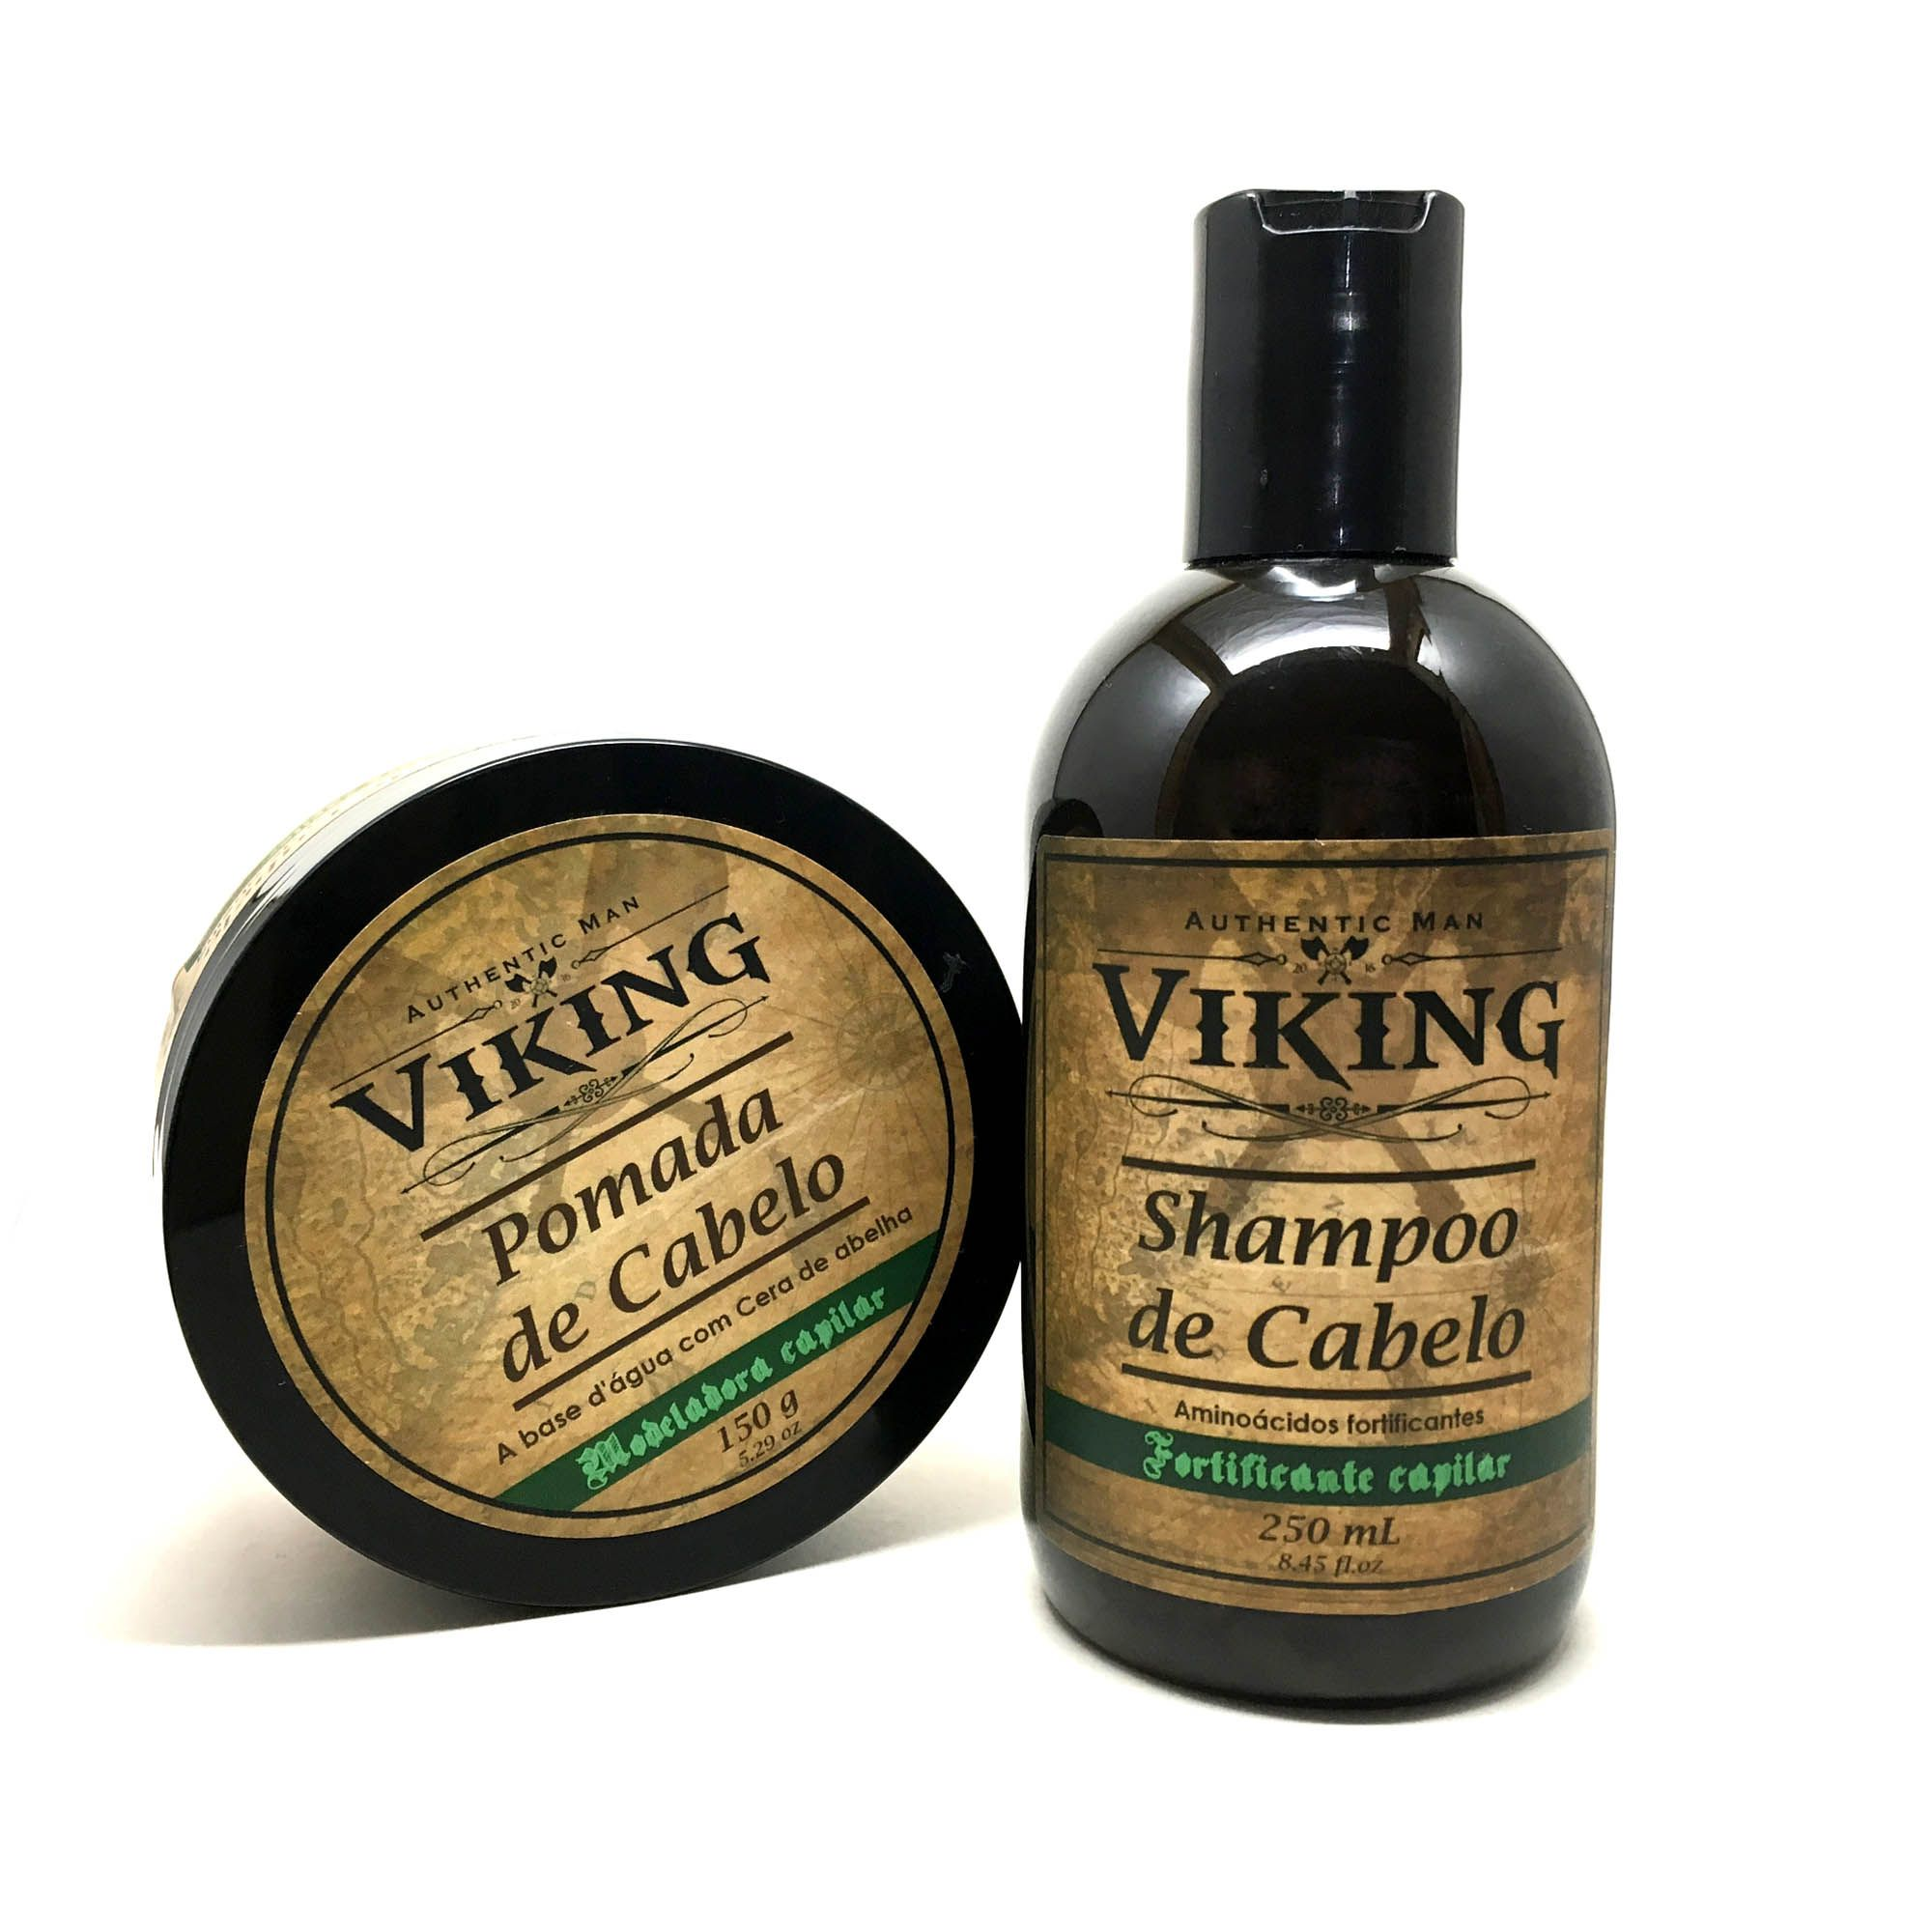 Kit para Cabelo - Green Action - Viking  - Viking